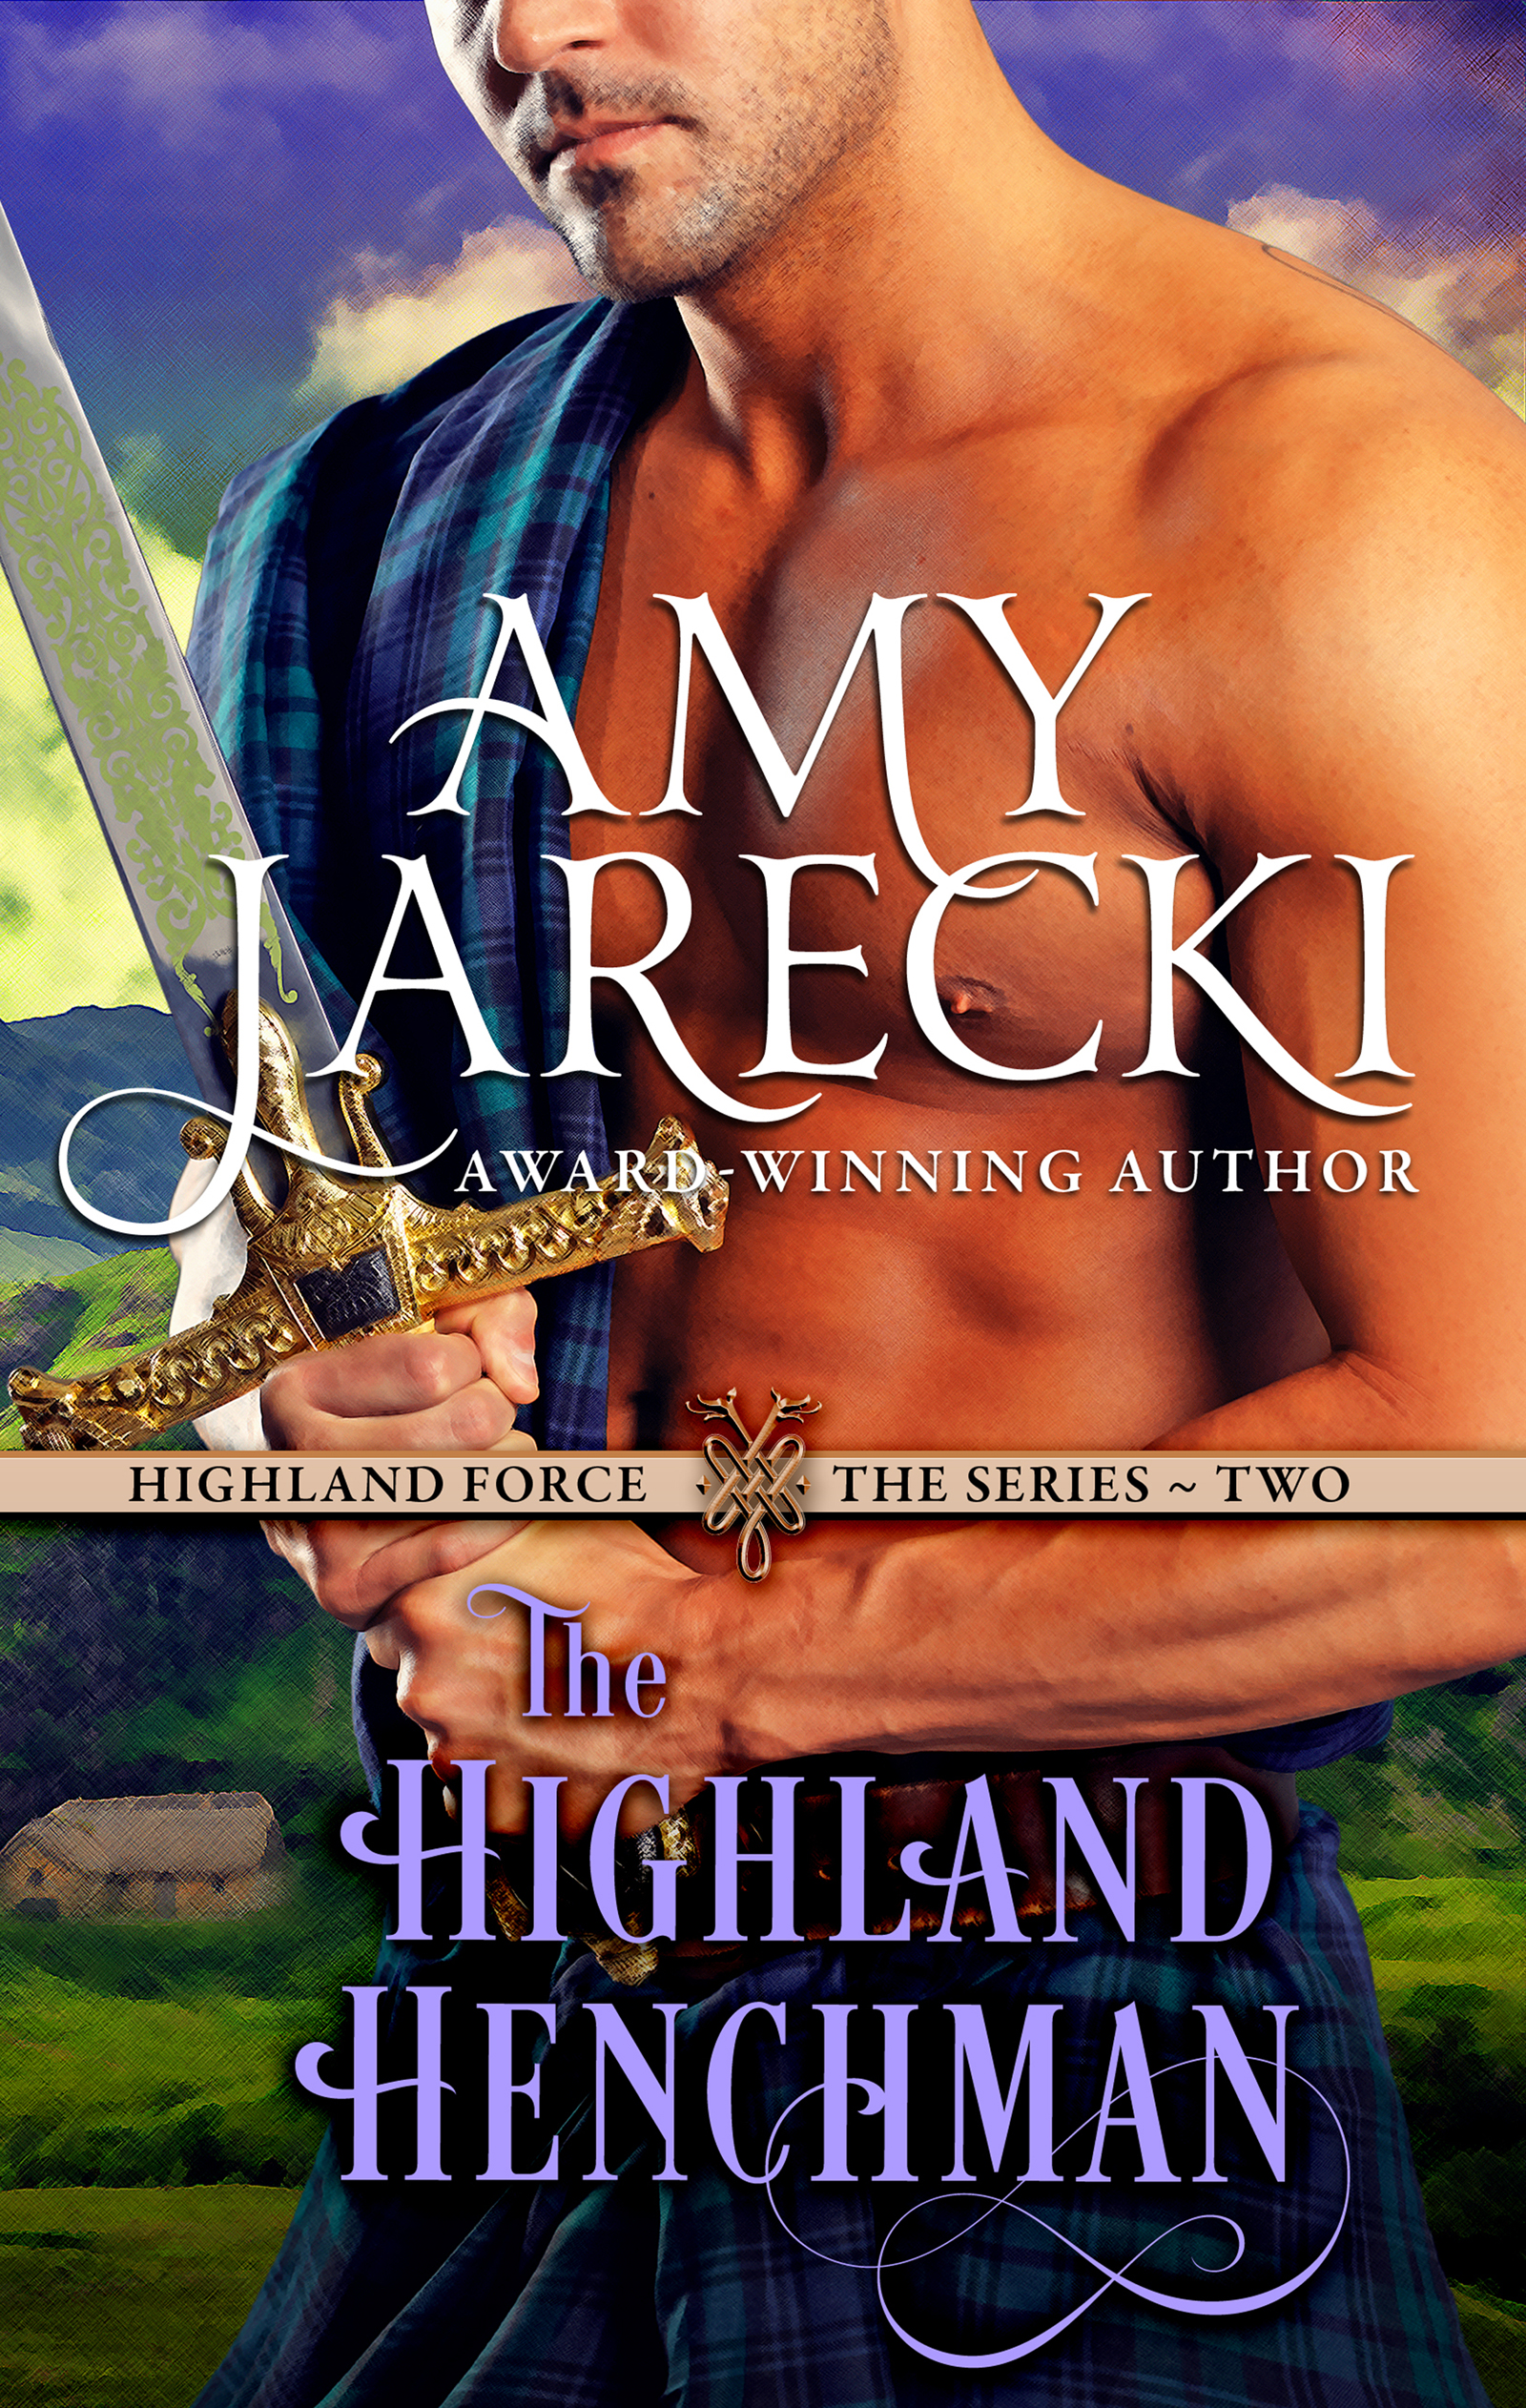 Amy Jarecki - The Highland Henchman (Scottish Historical Romance)